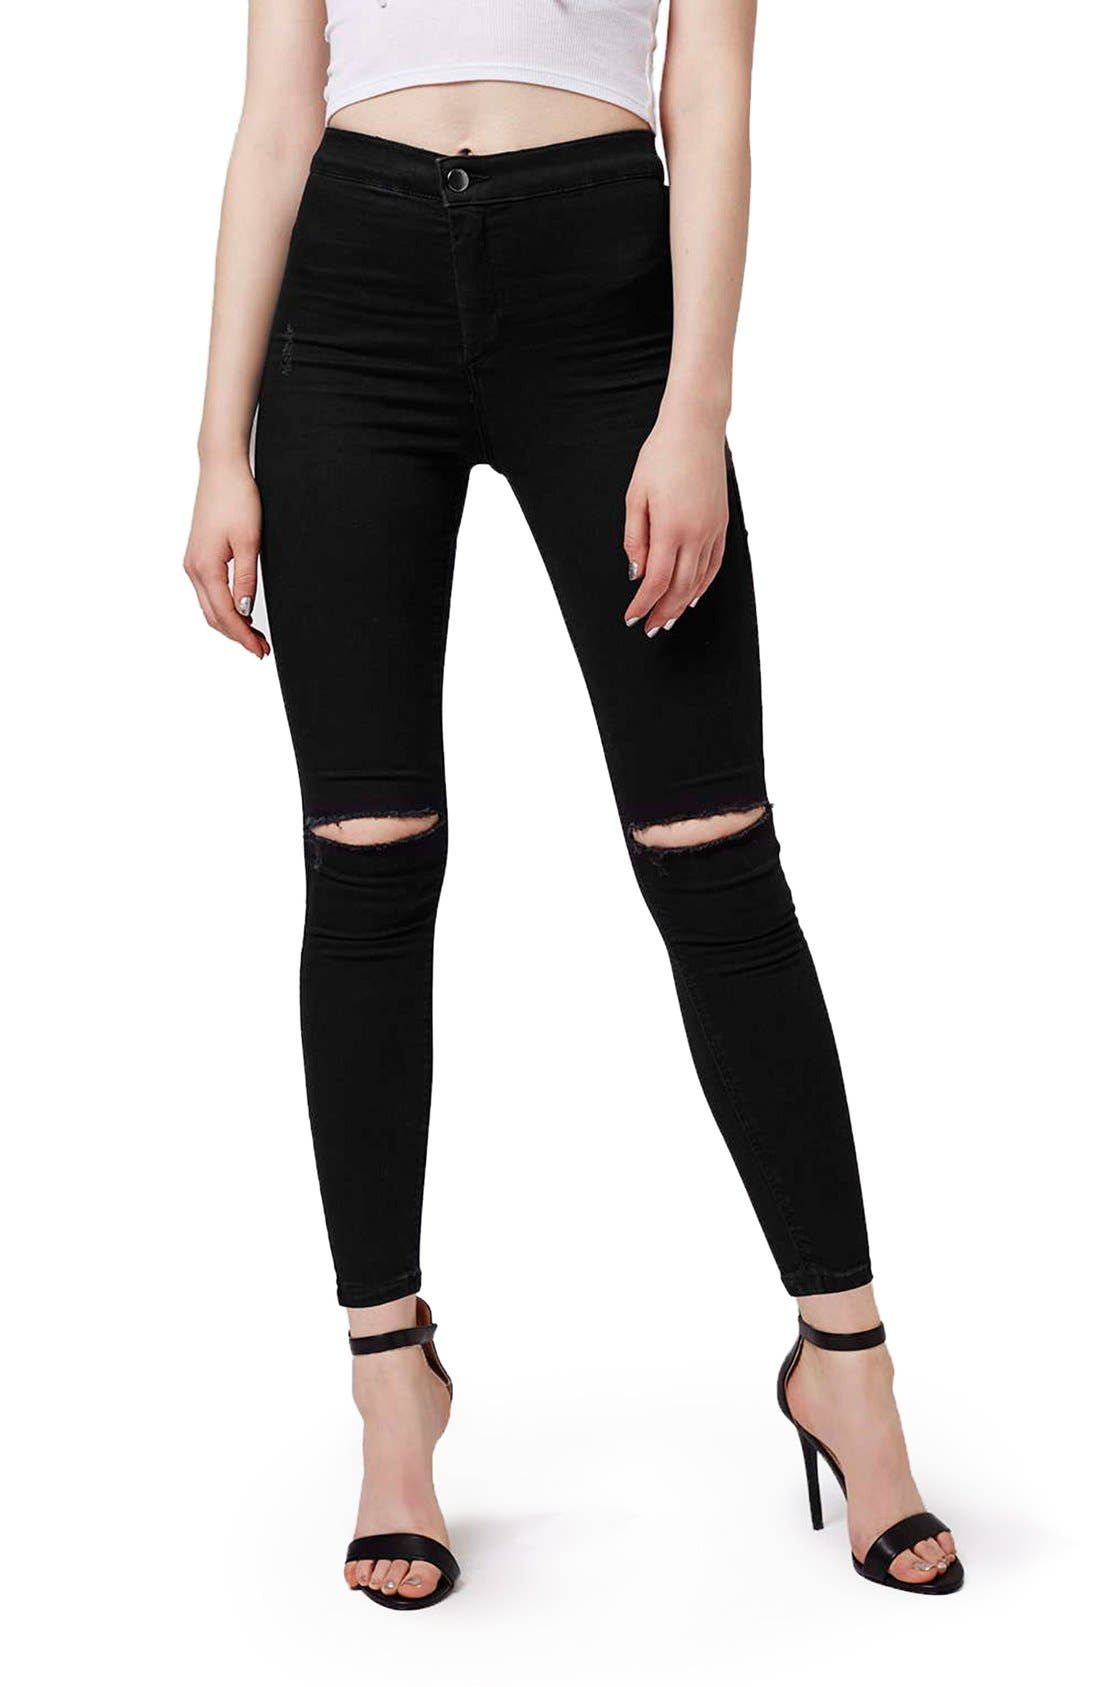 Alternate Image 1 Selected - Topshop Moto 'Joni' Ripped Skinny Jeans (Petite)